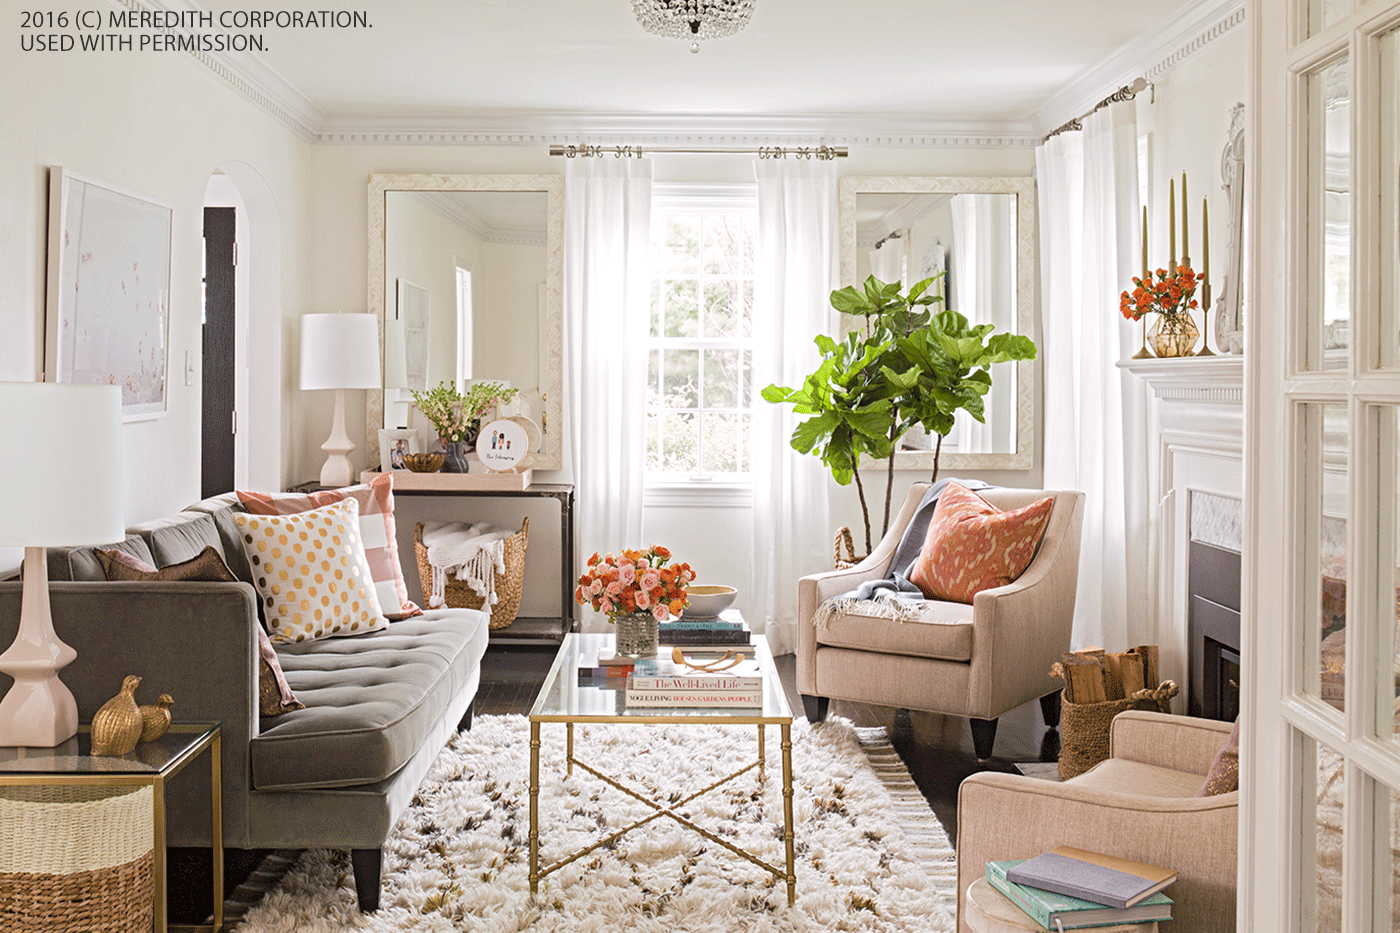 How To Design Small Spaces With Style